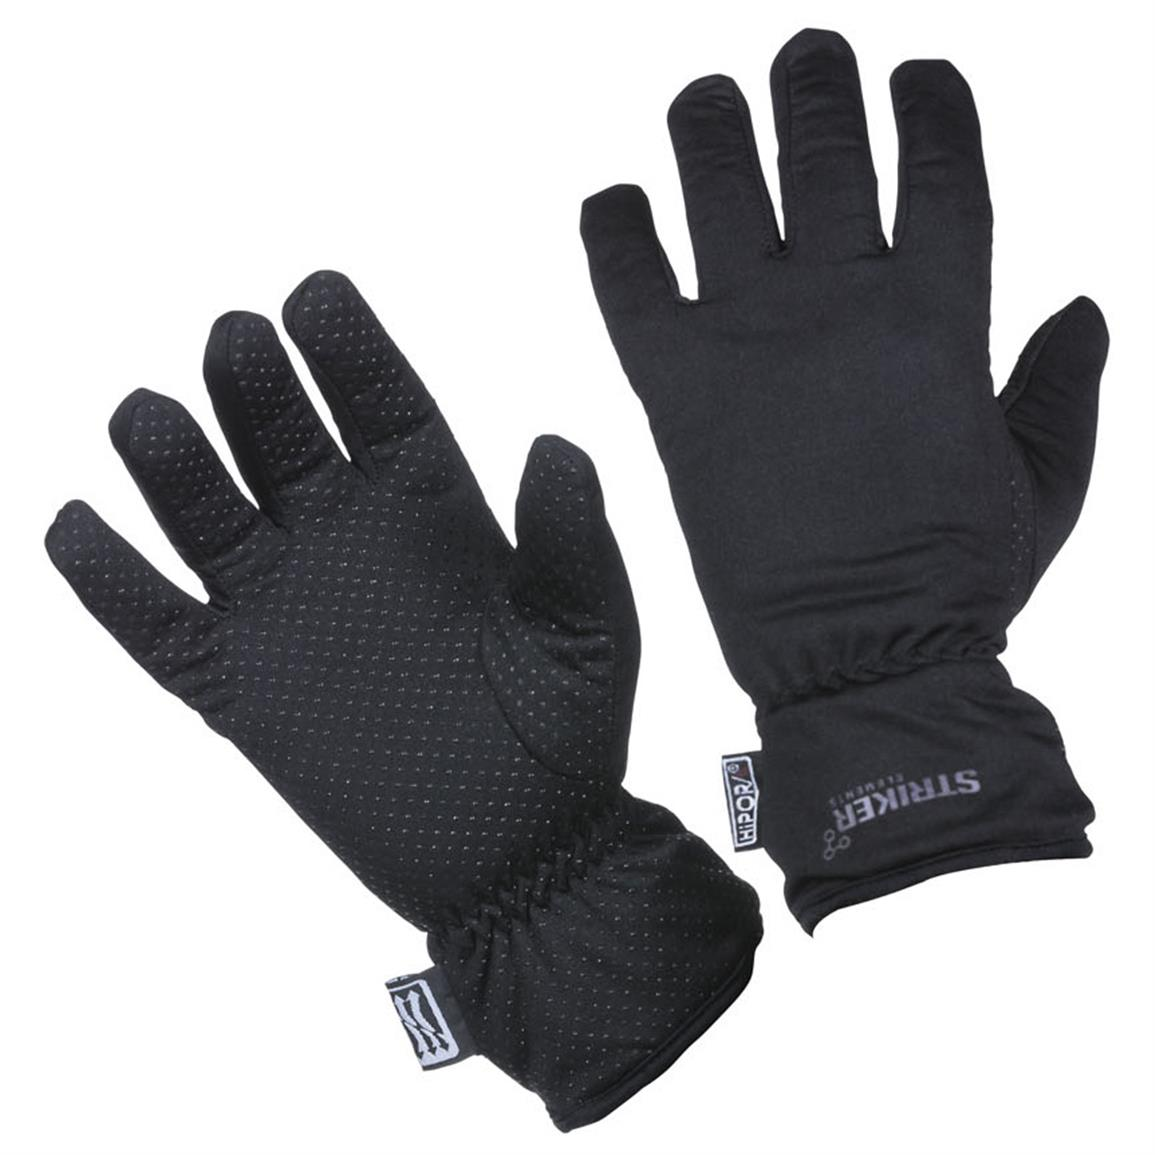 Striker Ice Second Skin Gloves, Black